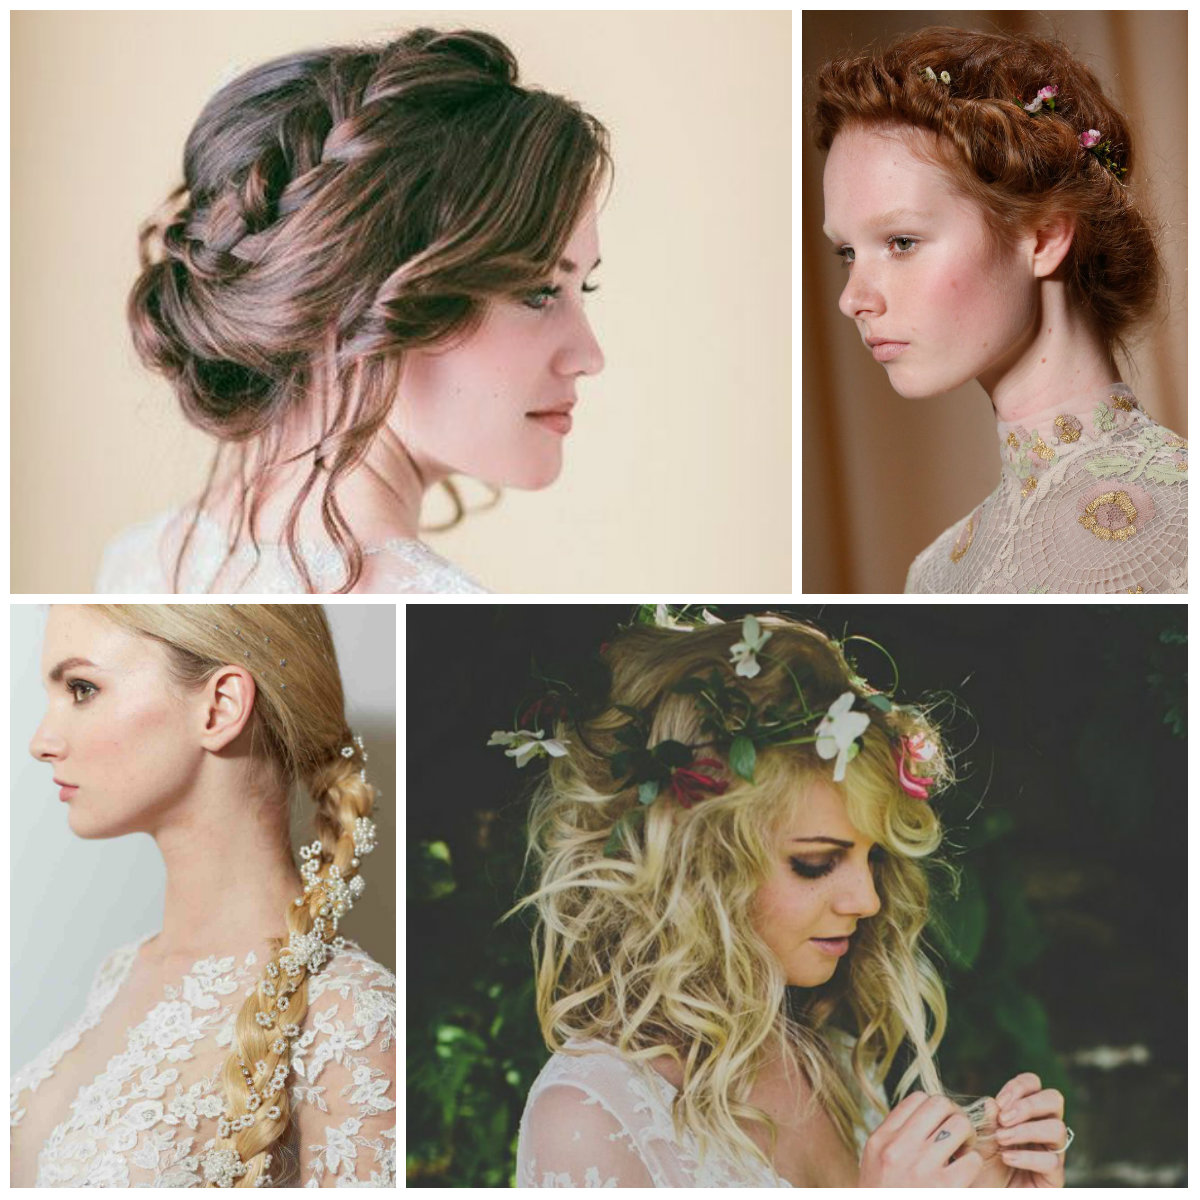 Hairstyles For Weddings Wedding Hairstyle Trends For 2016 What Do You Think #weddingideas